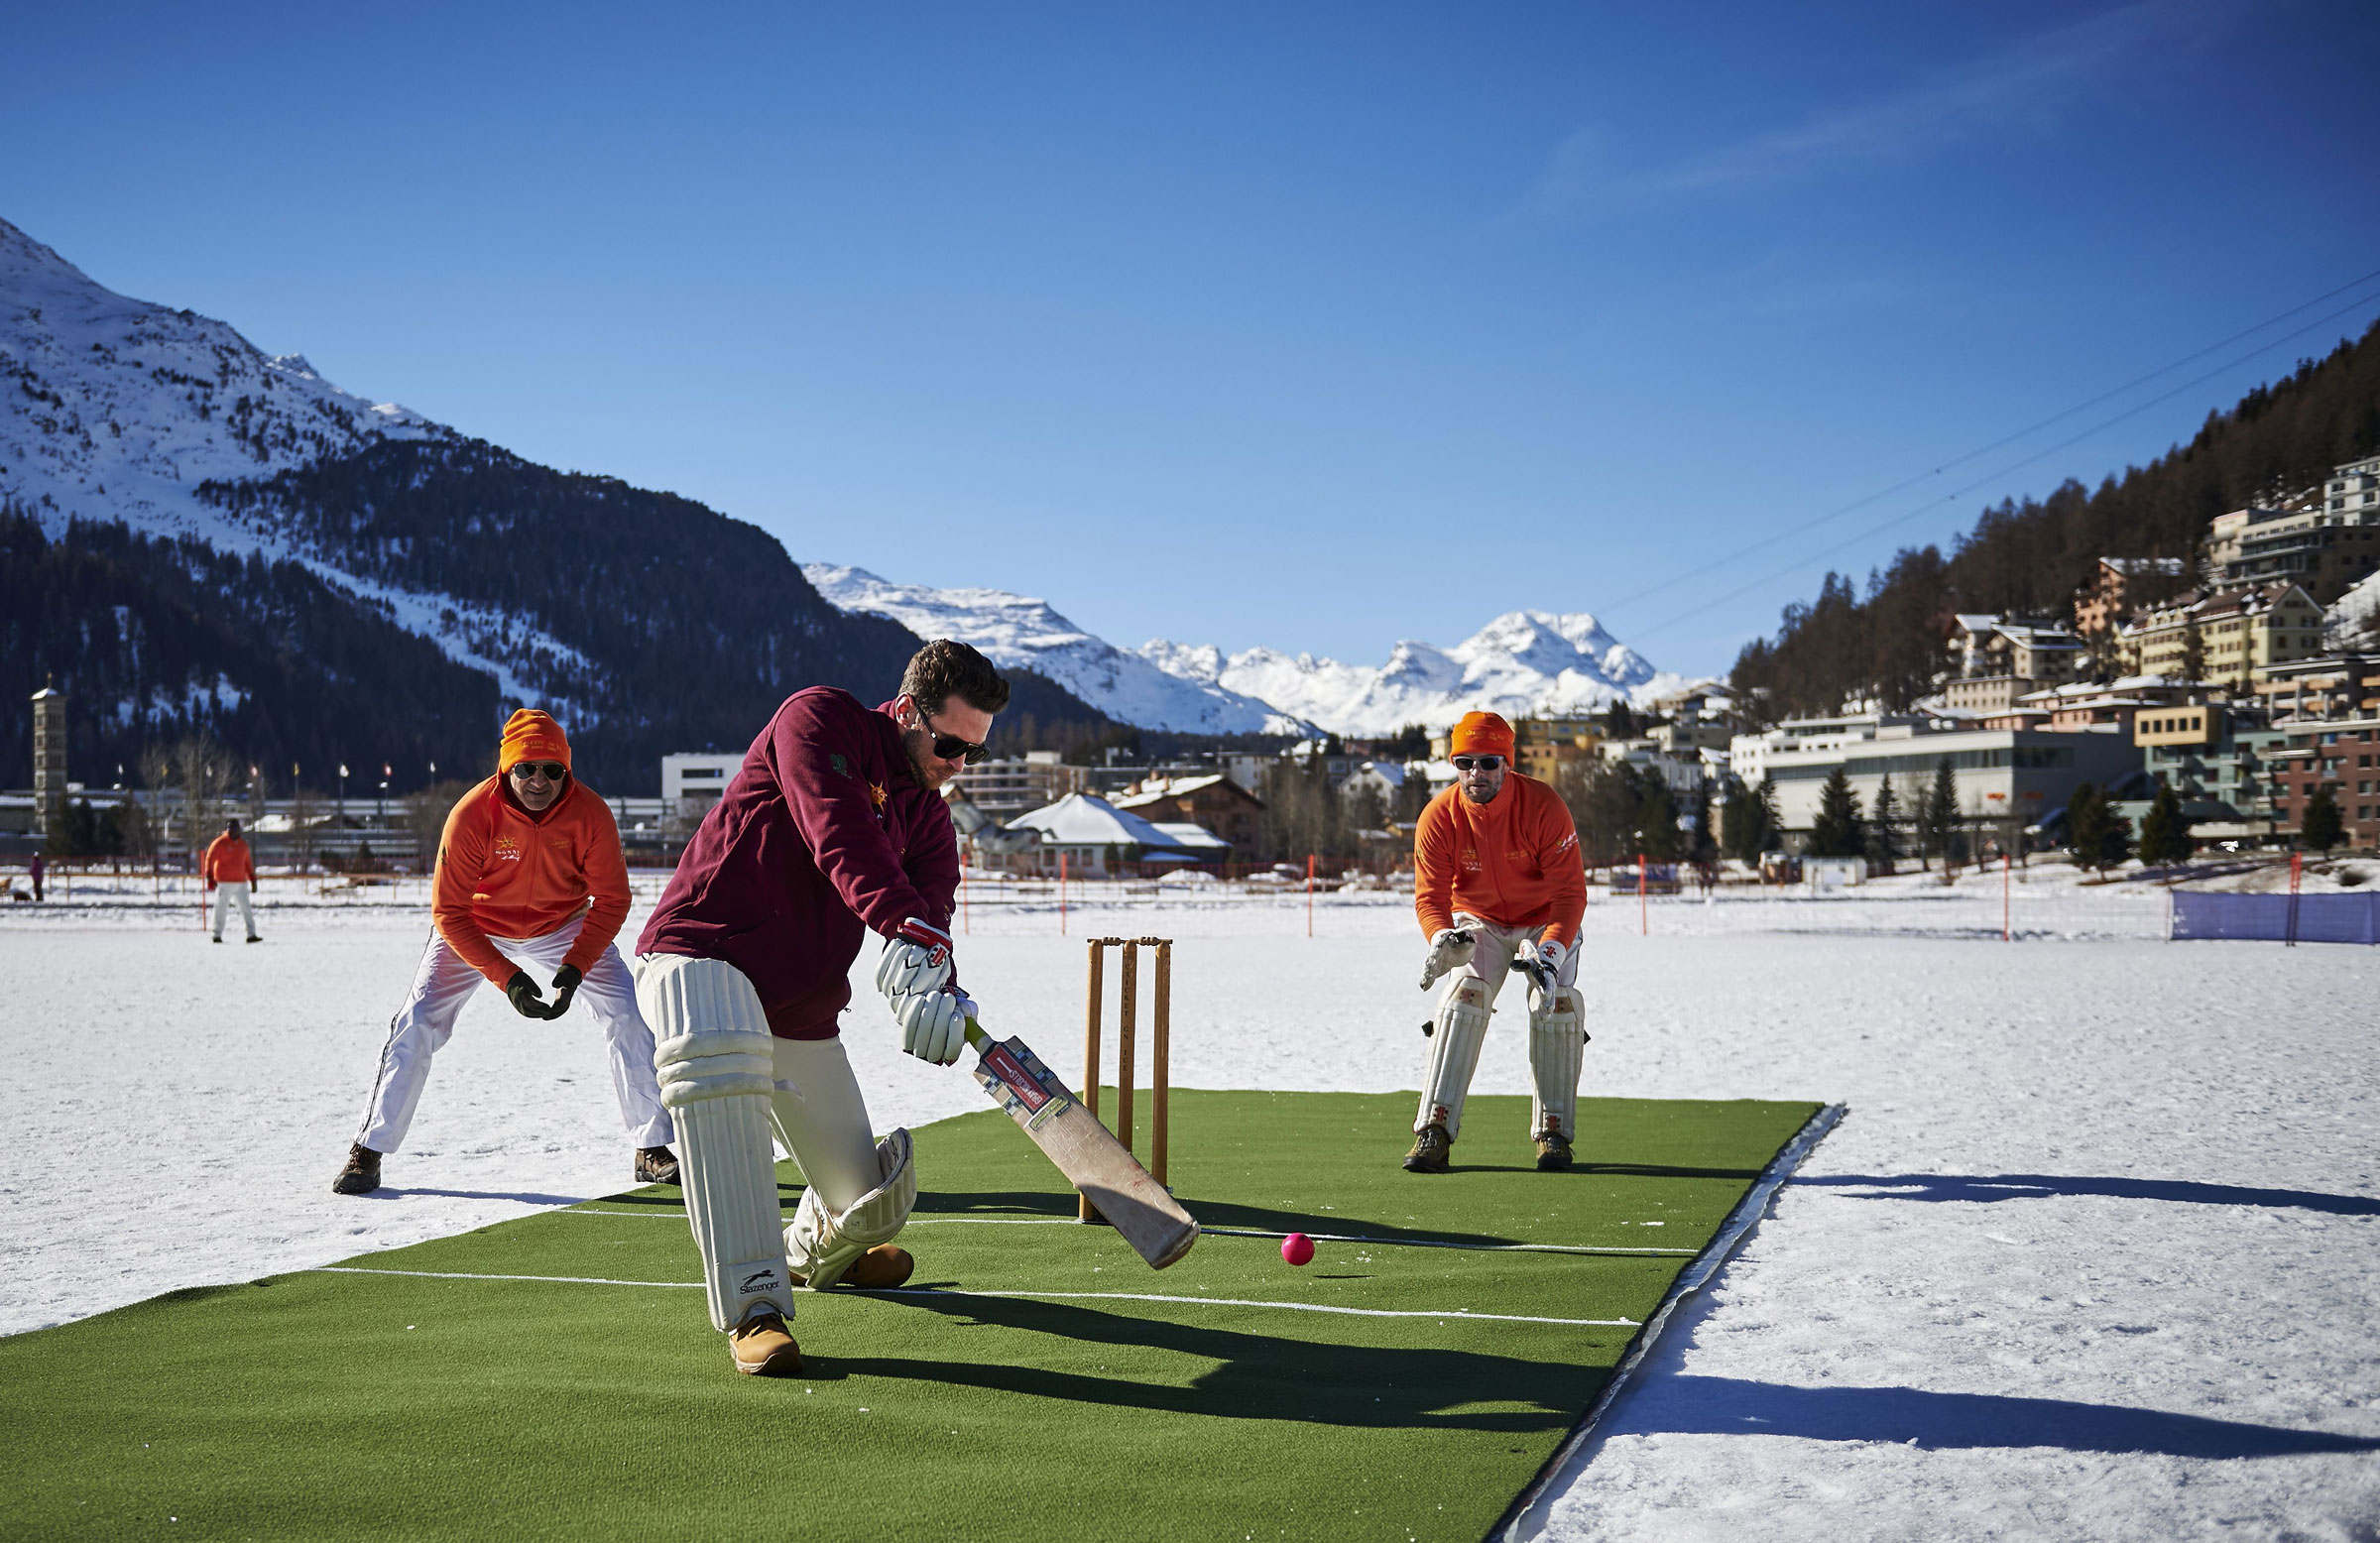 Ice cricket has been played in Switzerland for more than 25 years // Getty